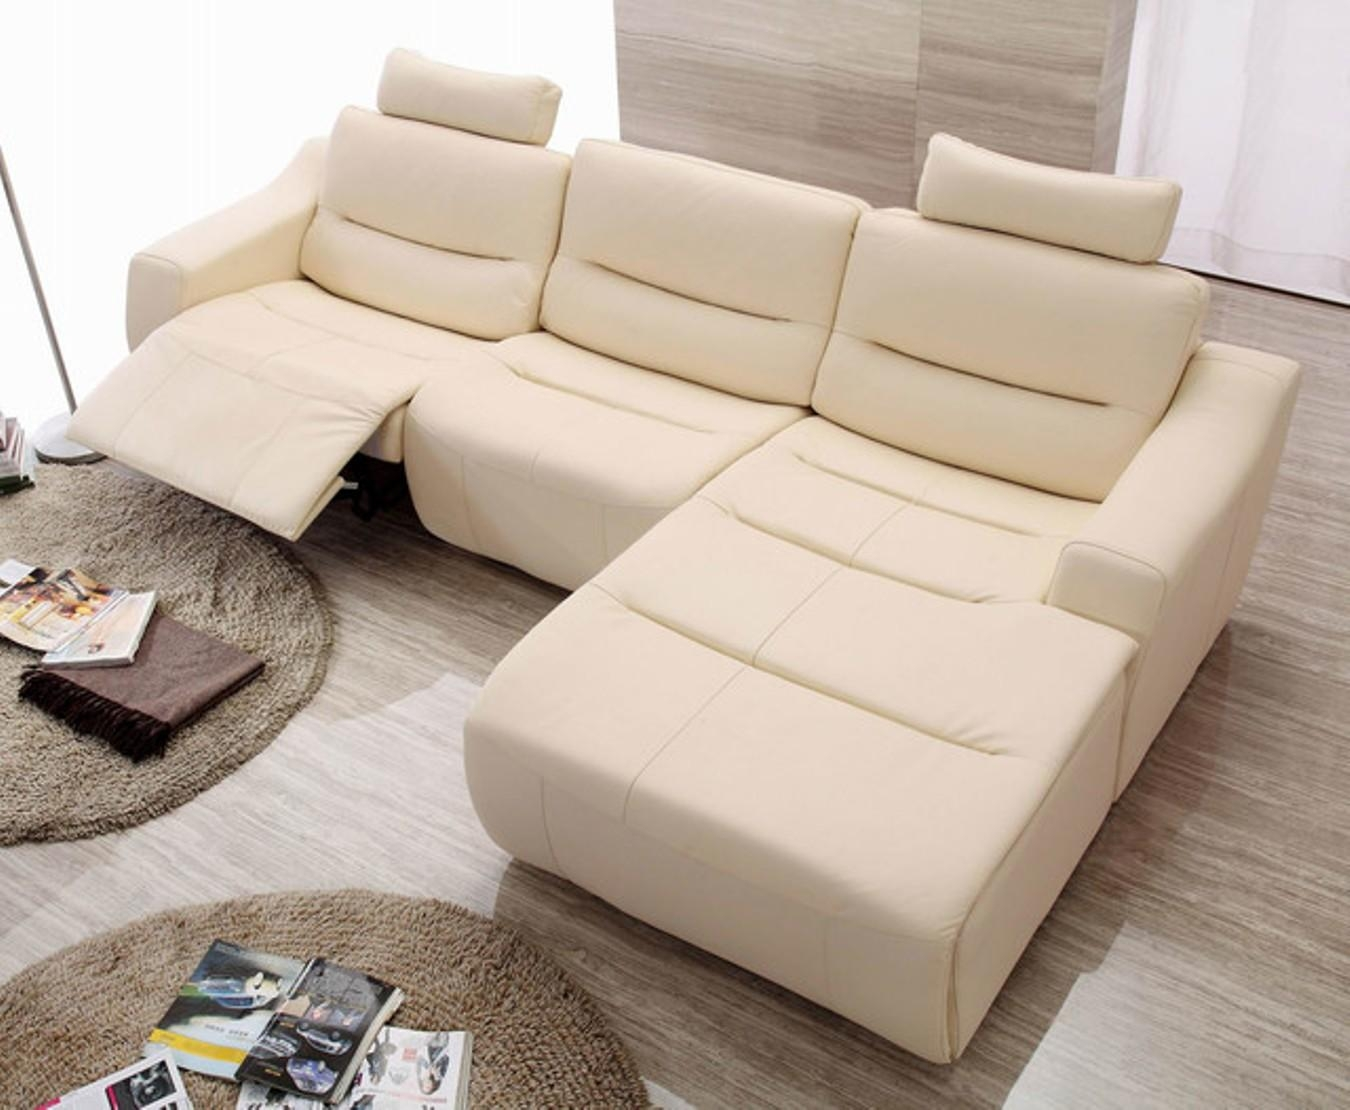 Sofas Center : Stunning Small Sectional Sofa With Recliner Images Intended For Small Scale Sofas (View 10 of 20)